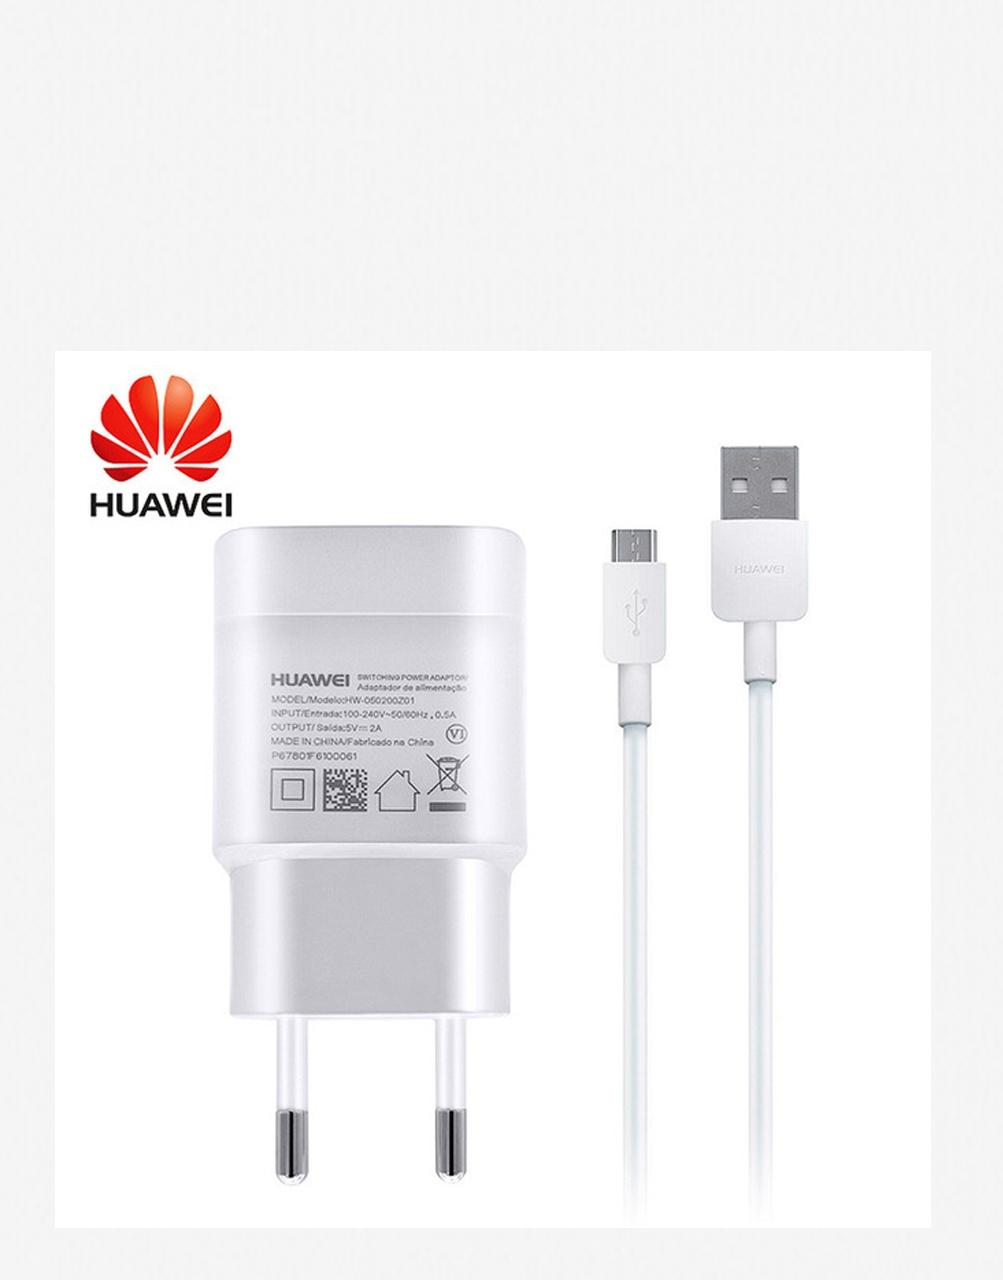 Huawei Charger Adapter Price in Sri Lanka